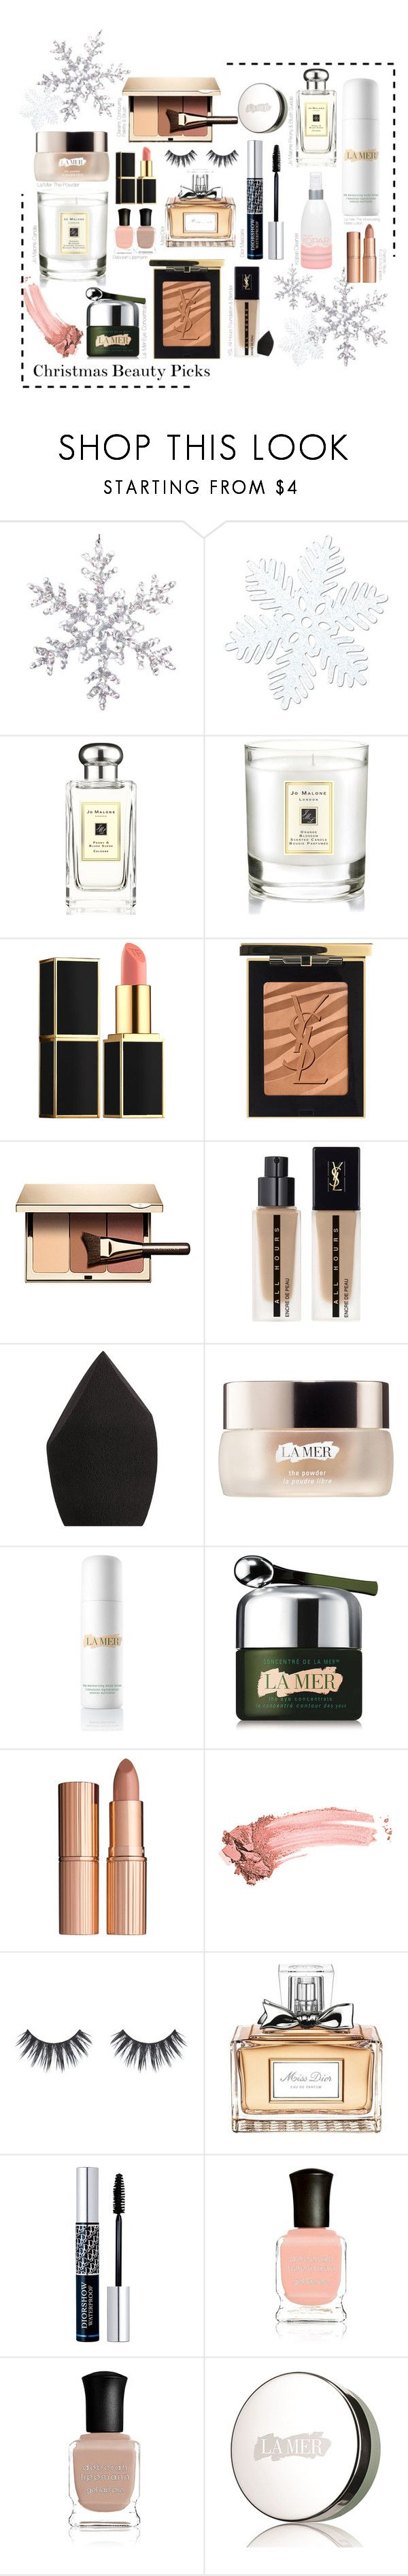 Christmas Beauty Picks by Chantal Tru on Polyvore featuring Yves Saint Laurent, Clarins, Charlotte Tilbury, Christian Dior, Jo Malone, Tom Ford and La Mer